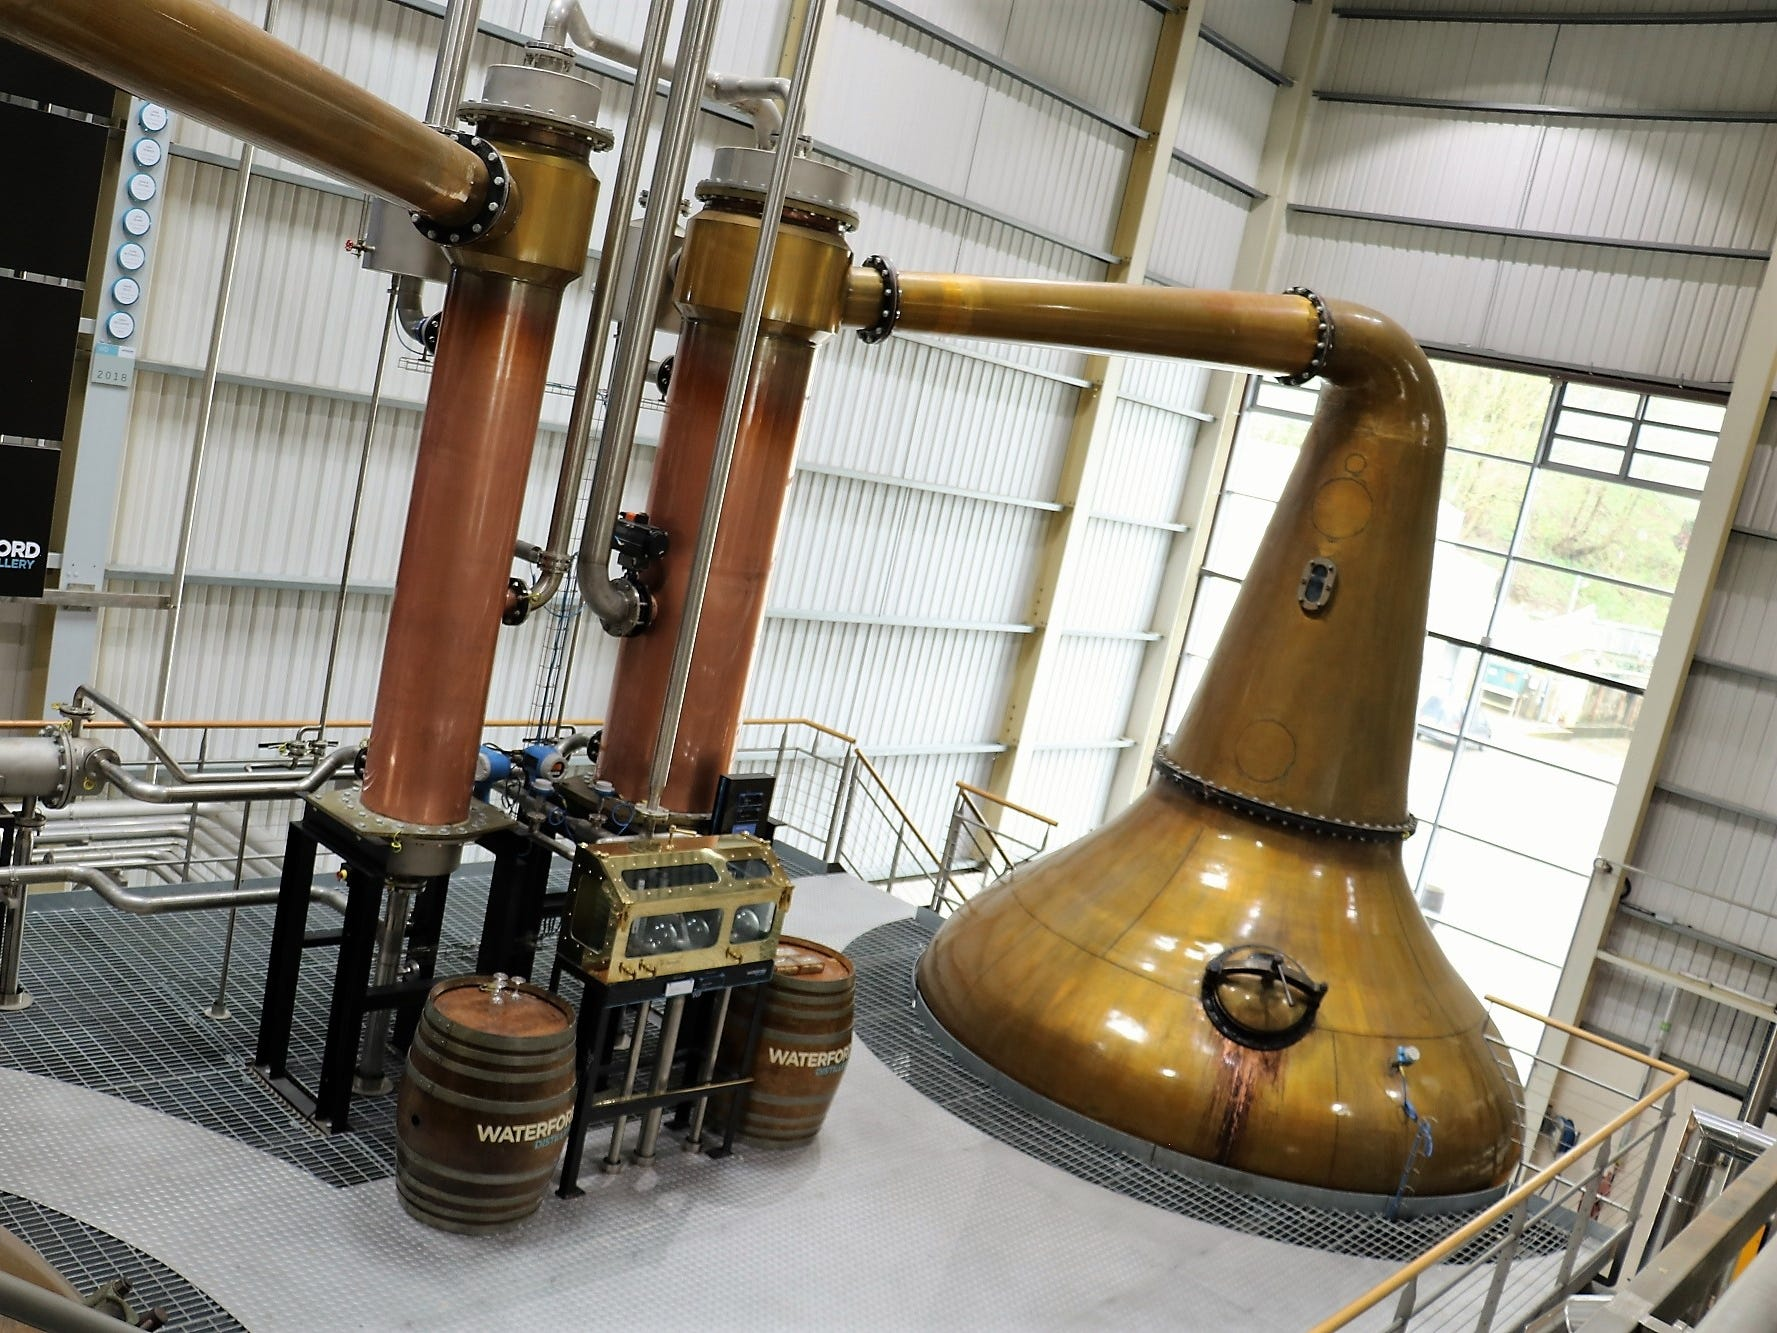 Waterford uses a set of copper pot stills manufactured by Forsyths, and follows a double-distillation system, as opposed to the triple distillation more common in Ireland. The stills had a circuitous journey to the distillery, residing first at Inverleven Distillery and then Bruichladdich, prior to being fixed up by Forsyths.